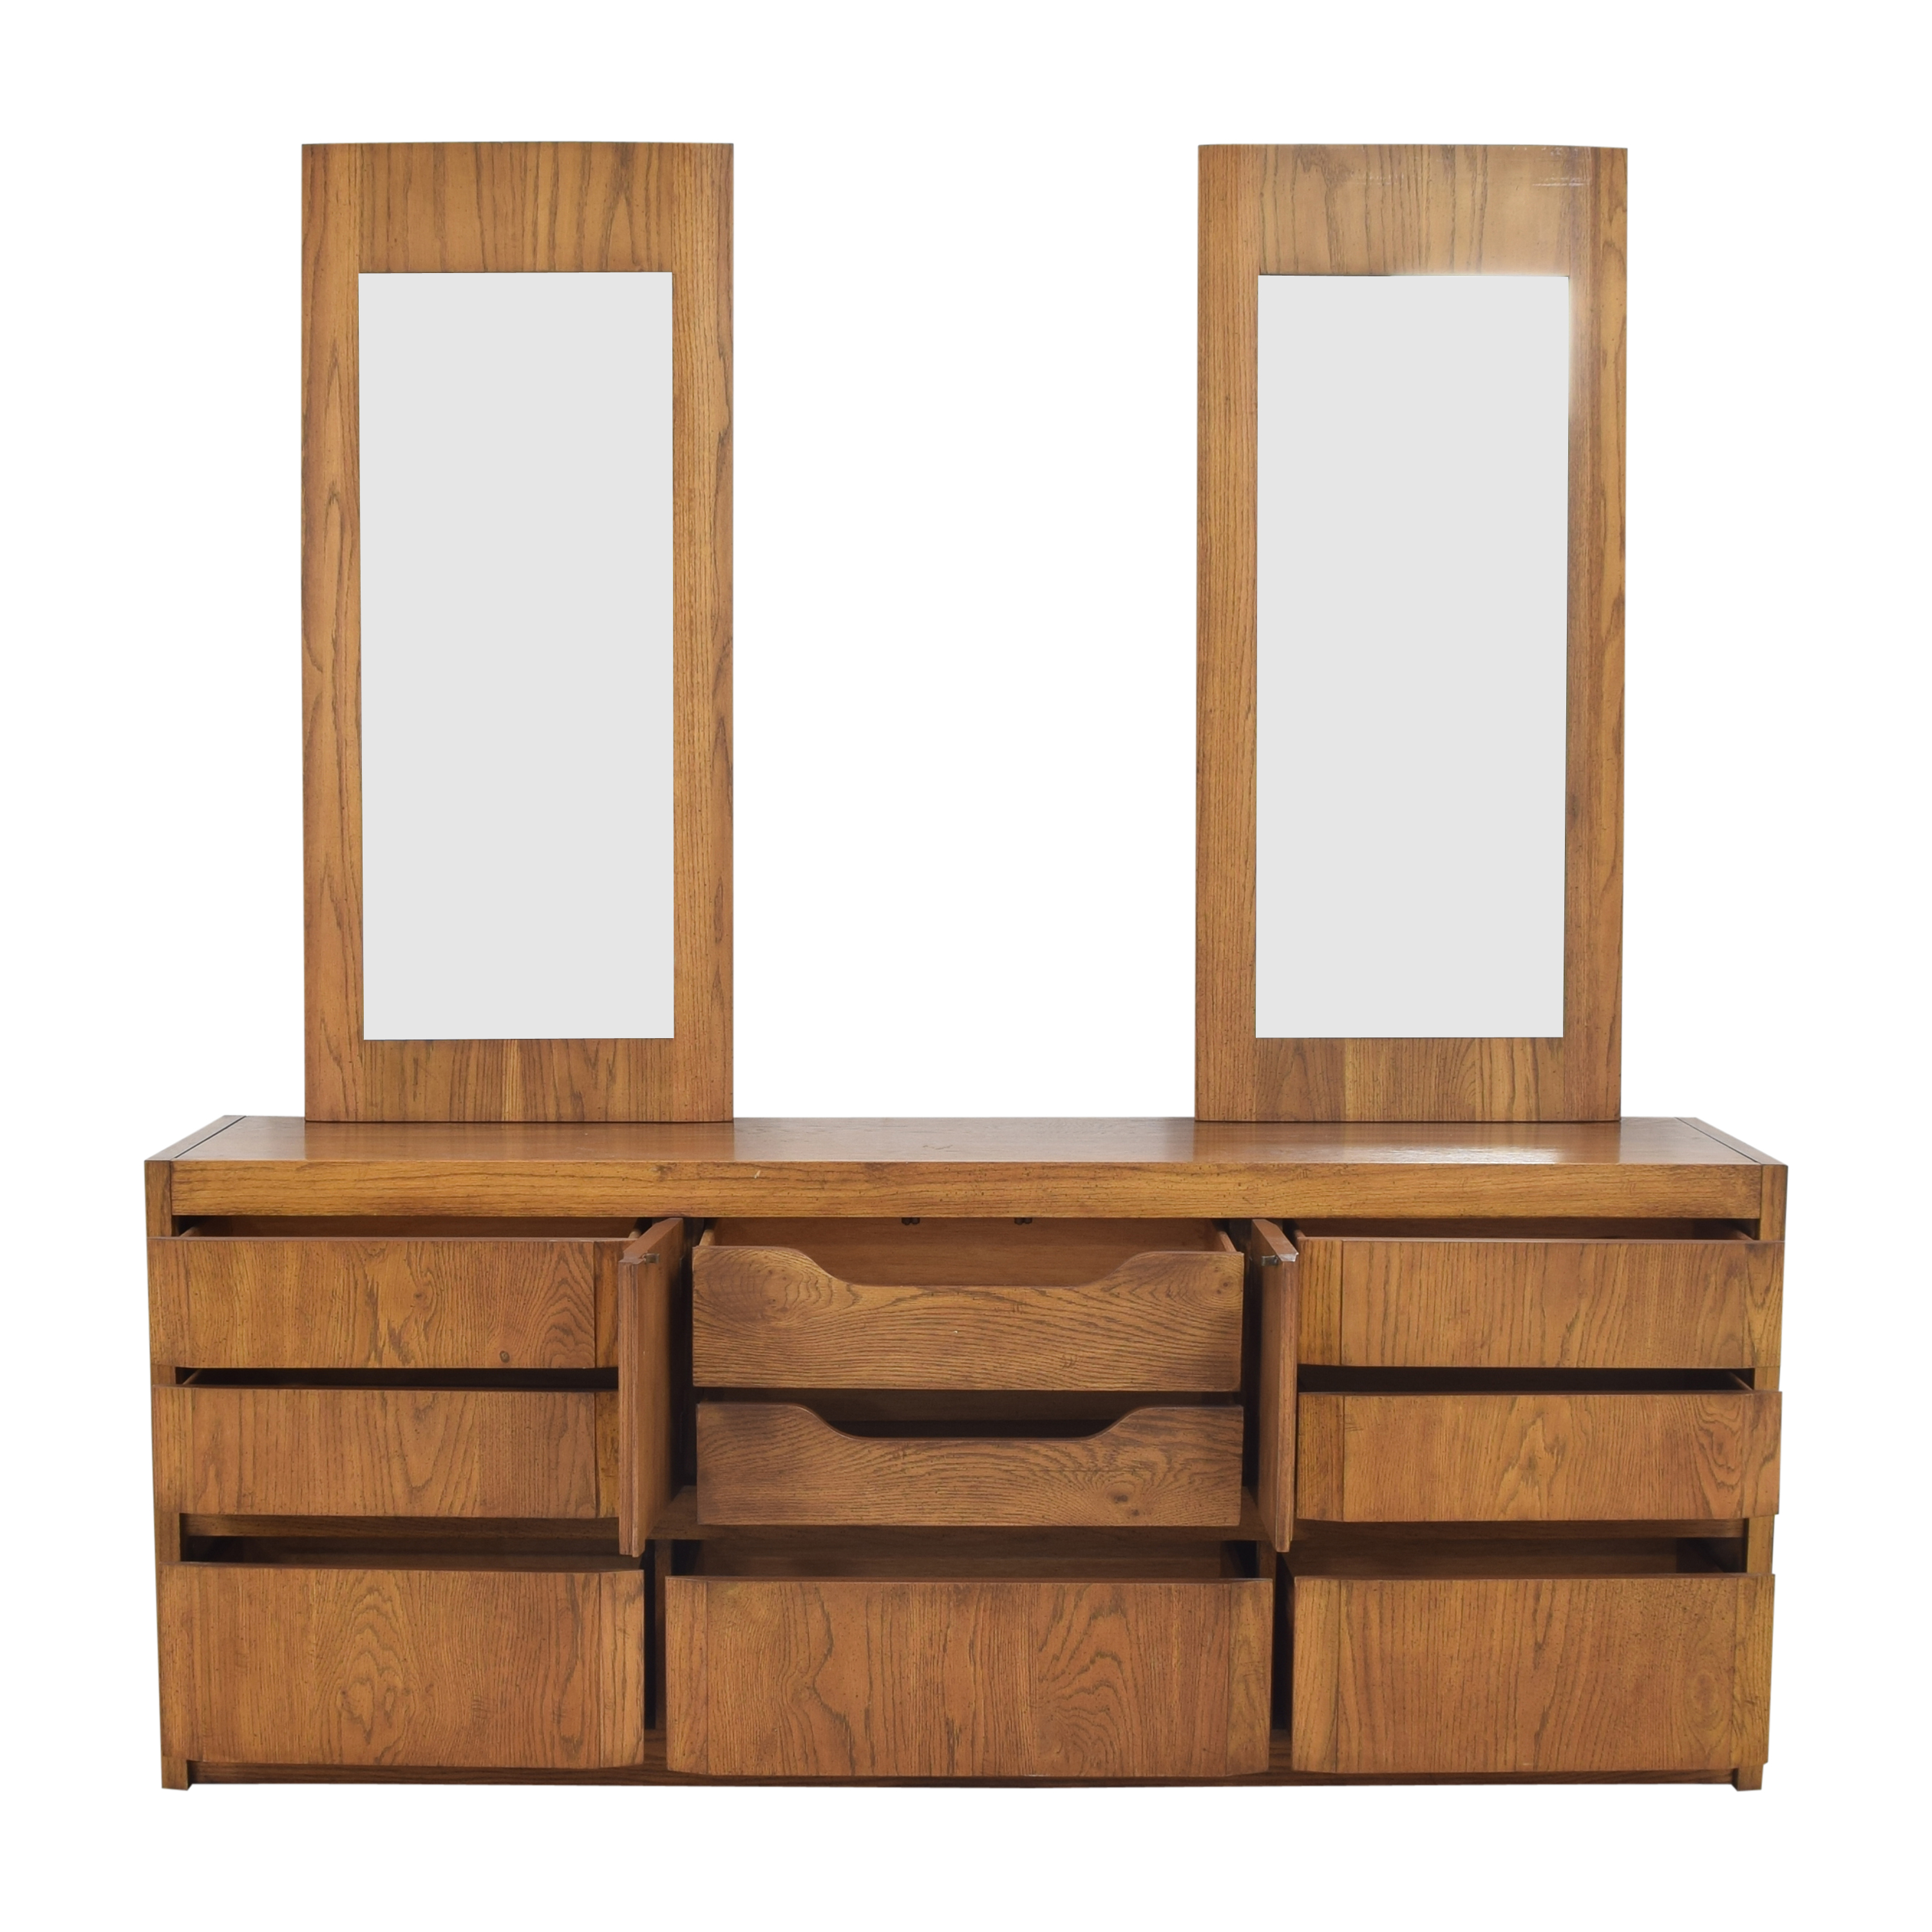 buy Thomasville Huntley by Thomasville Triple Dresser with Mirrors online